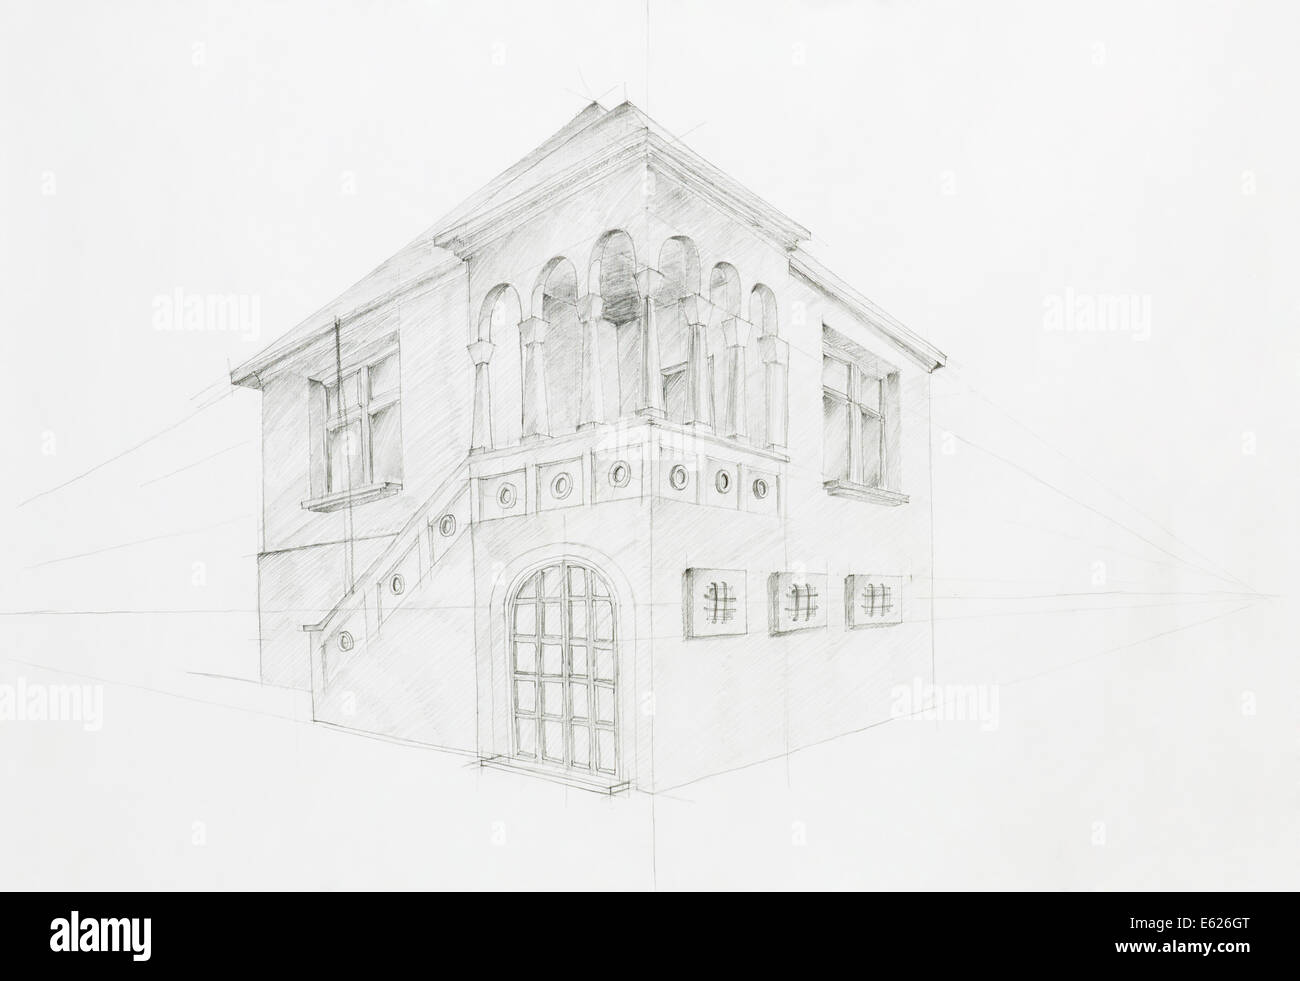 Graphic Sketch Architectural Perspective Of Old House Drawn By